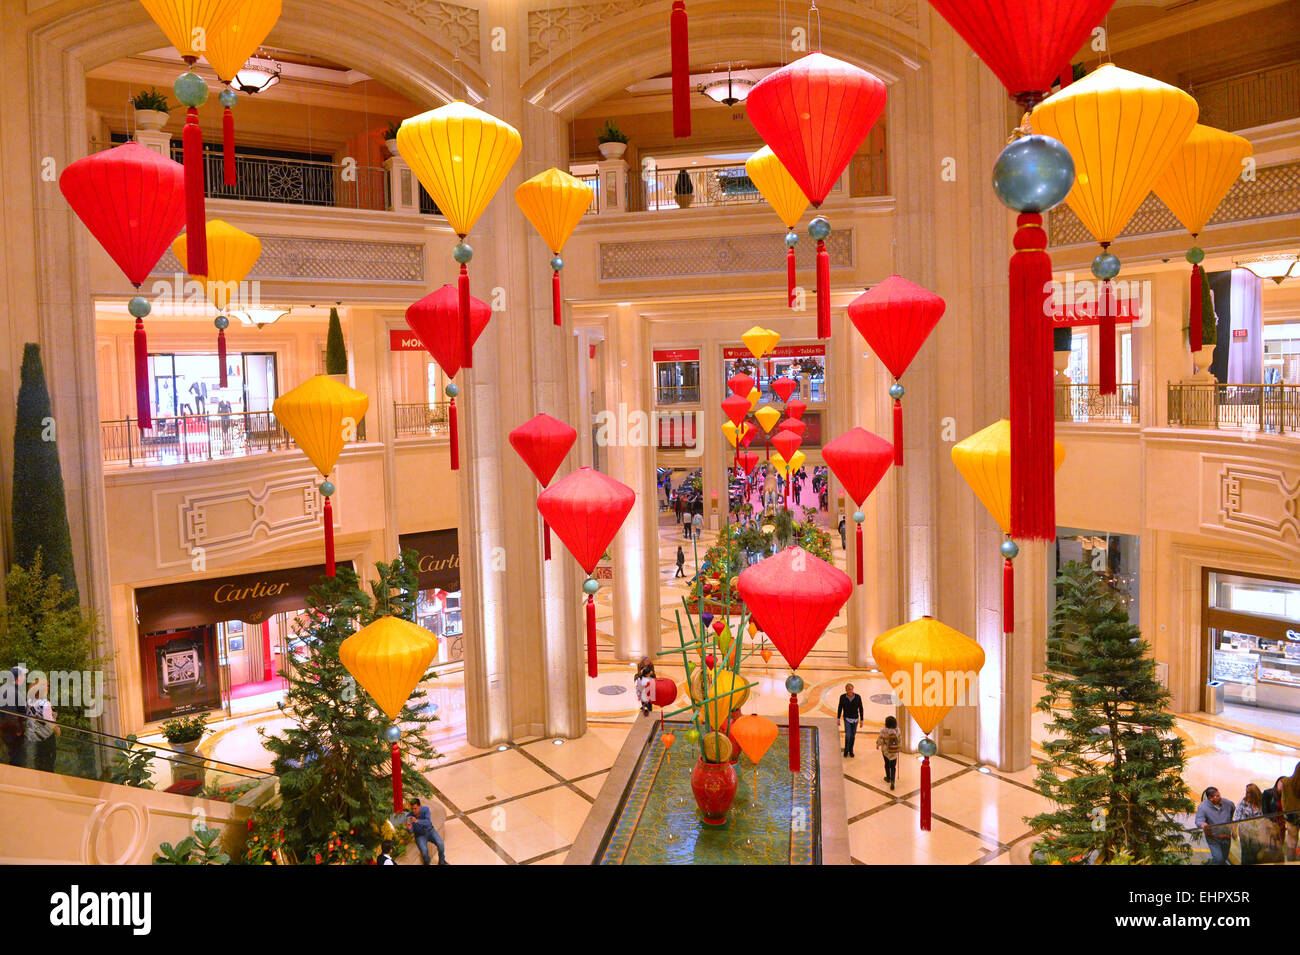 chinese new year decorations at the venetian hotel casino in las stock photo 79794115 alamy. Black Bedroom Furniture Sets. Home Design Ideas